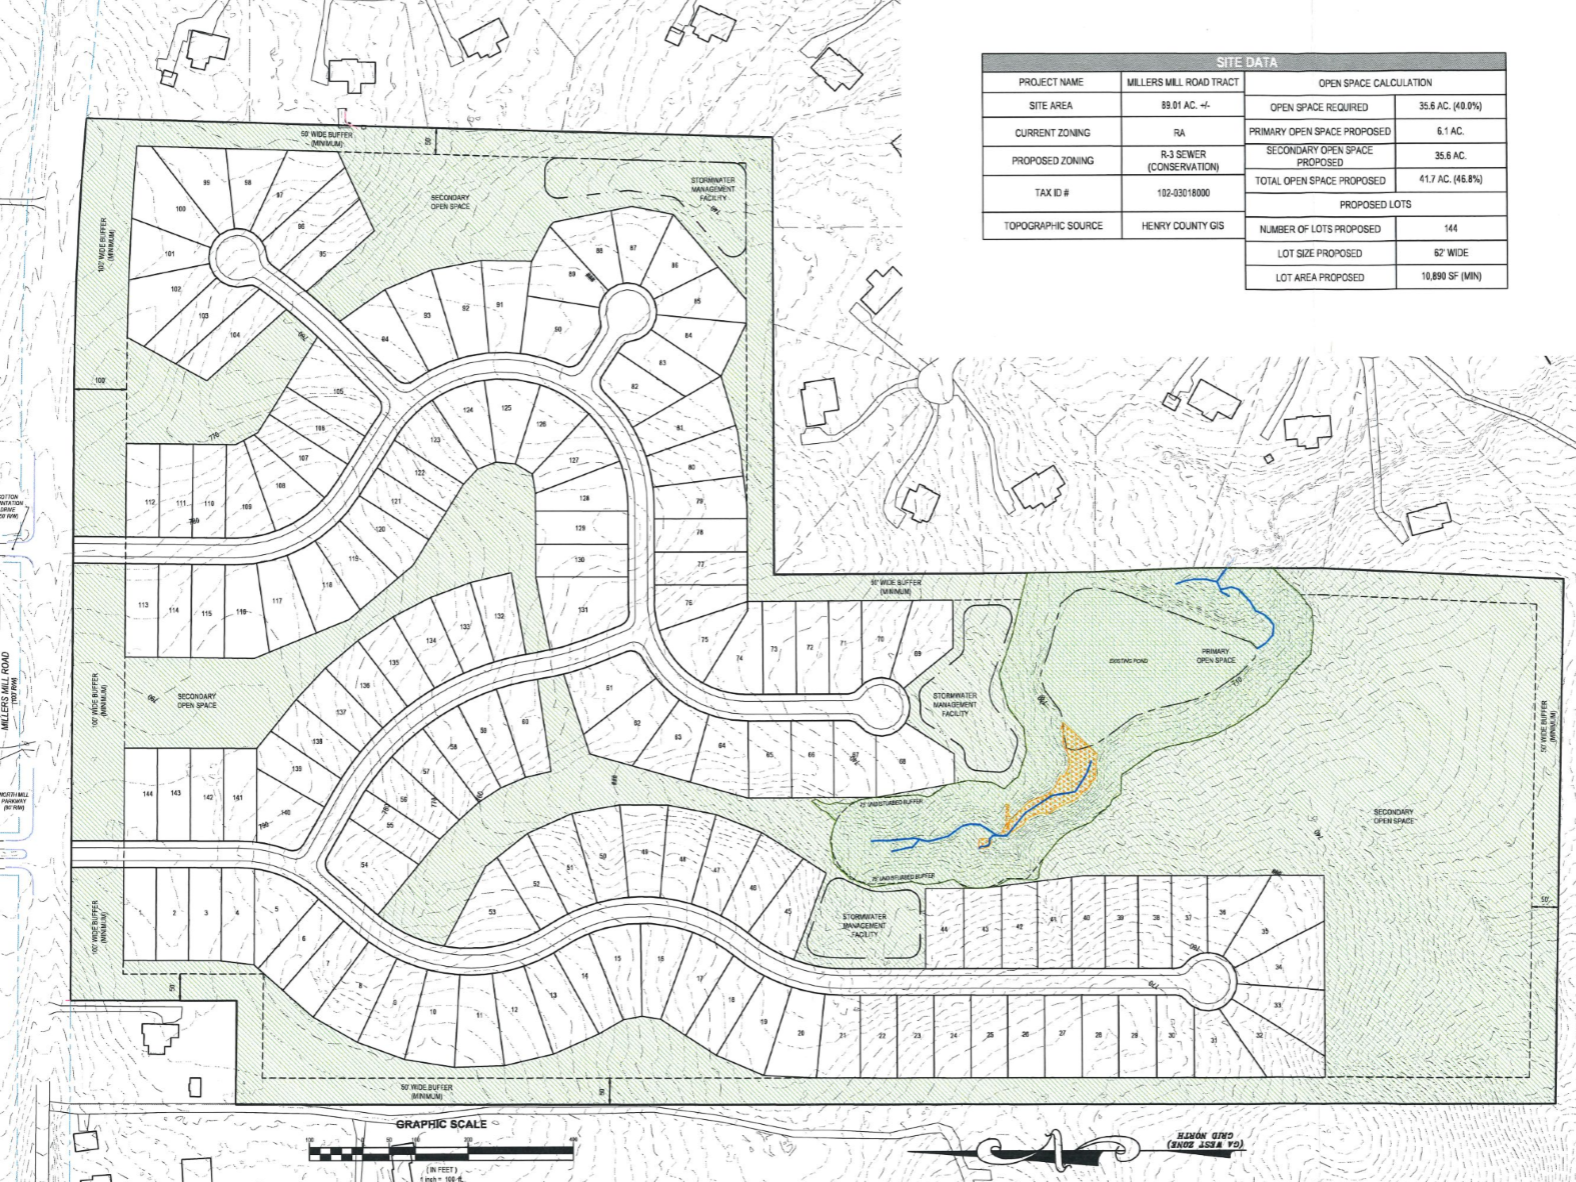 Concept site plan for proposed 1496 Millers Mill Road development (applicant photo)